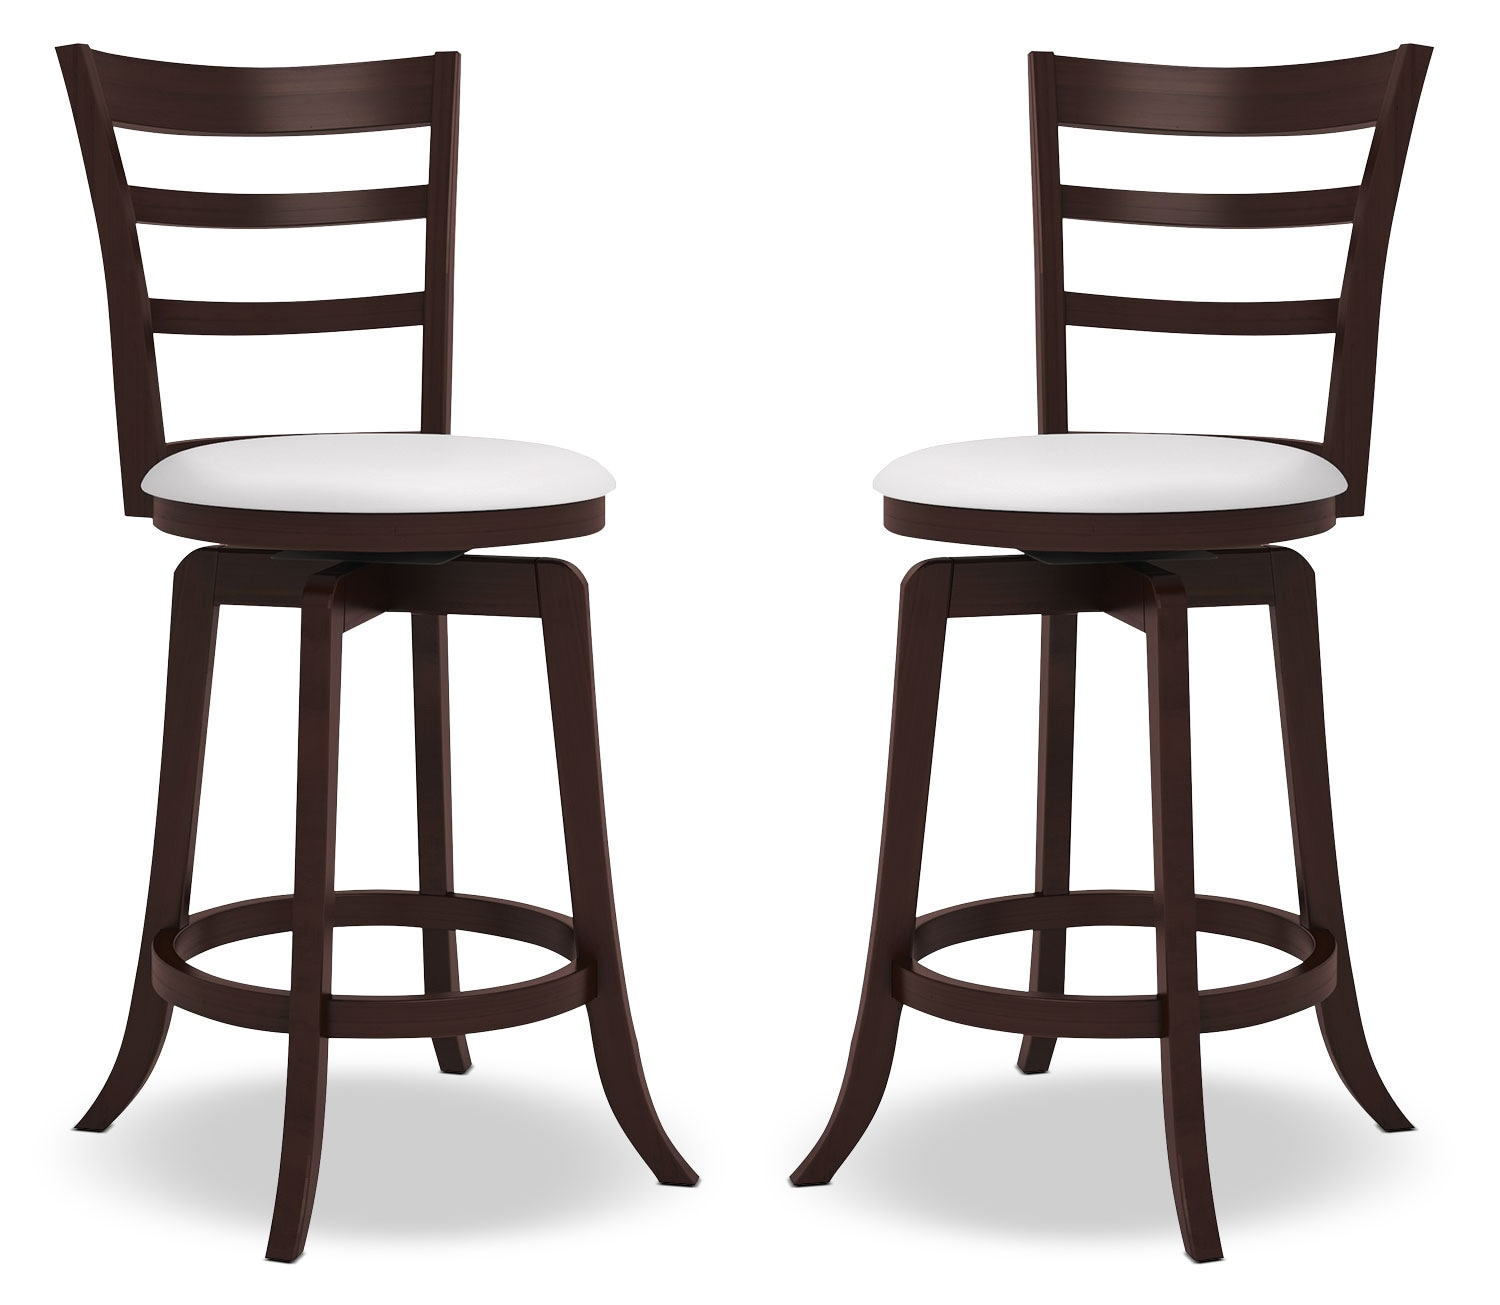 "Woodgrove 38"" Barstool, Set of 2 – Slatted Back"